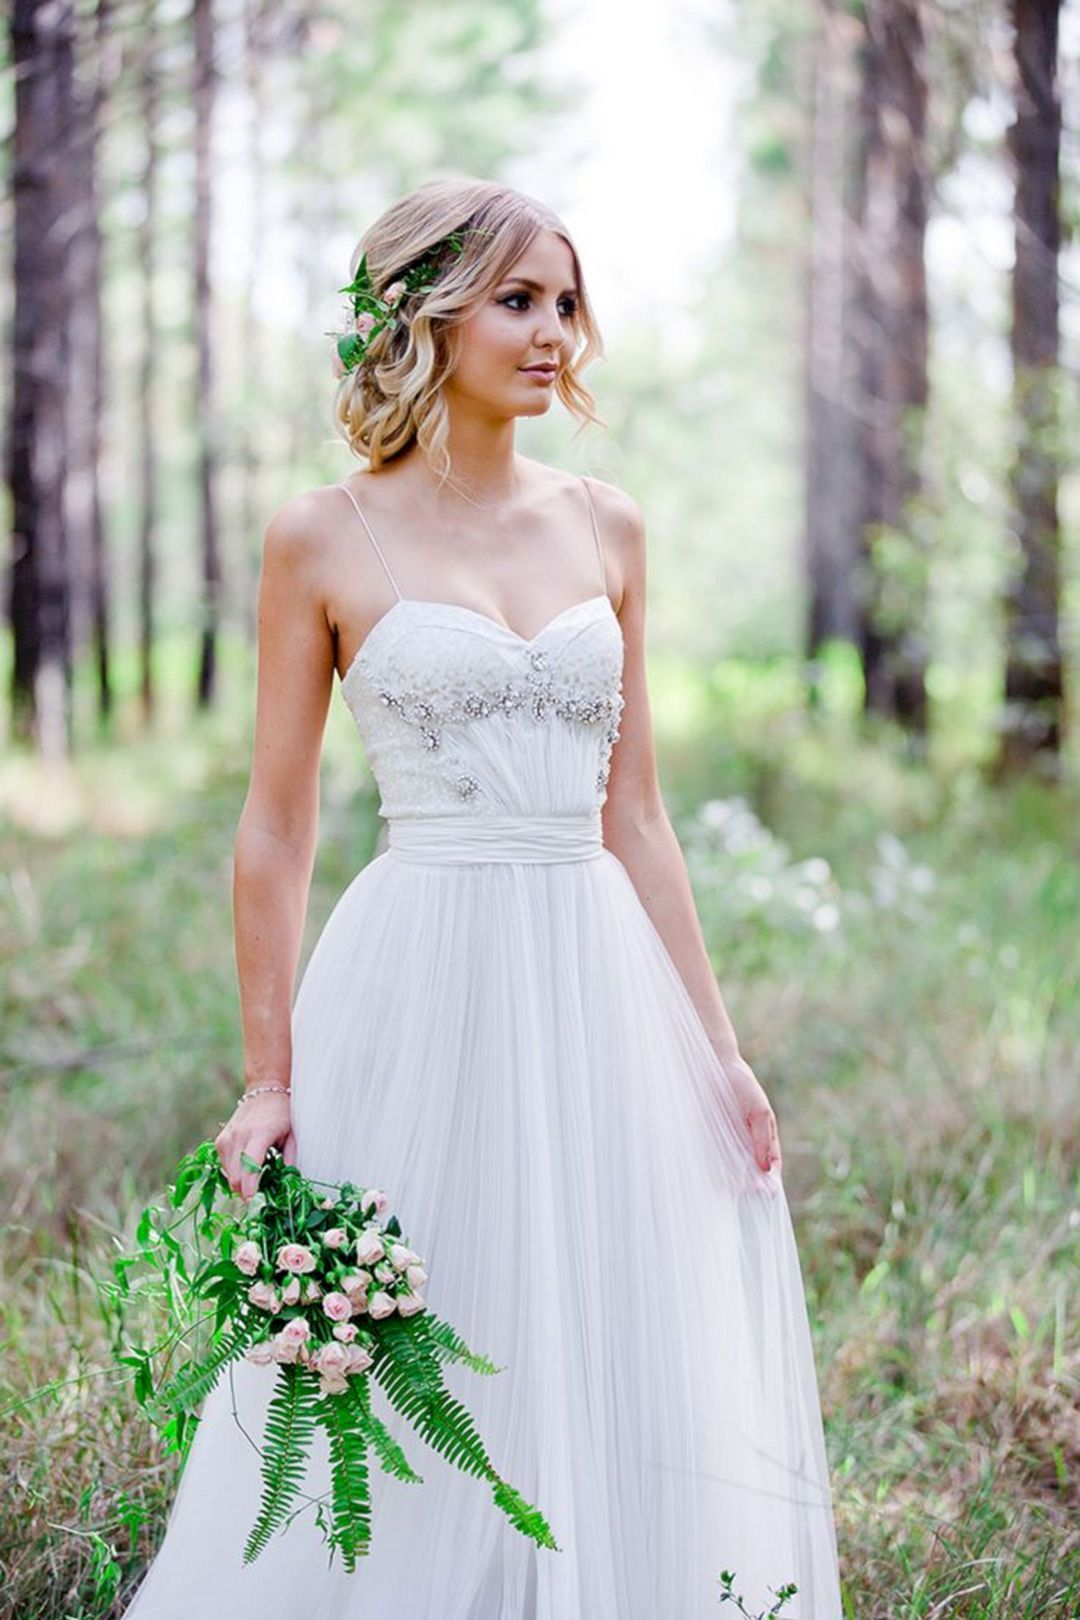 20 awesome rustic wedding dresses ideas you will love it